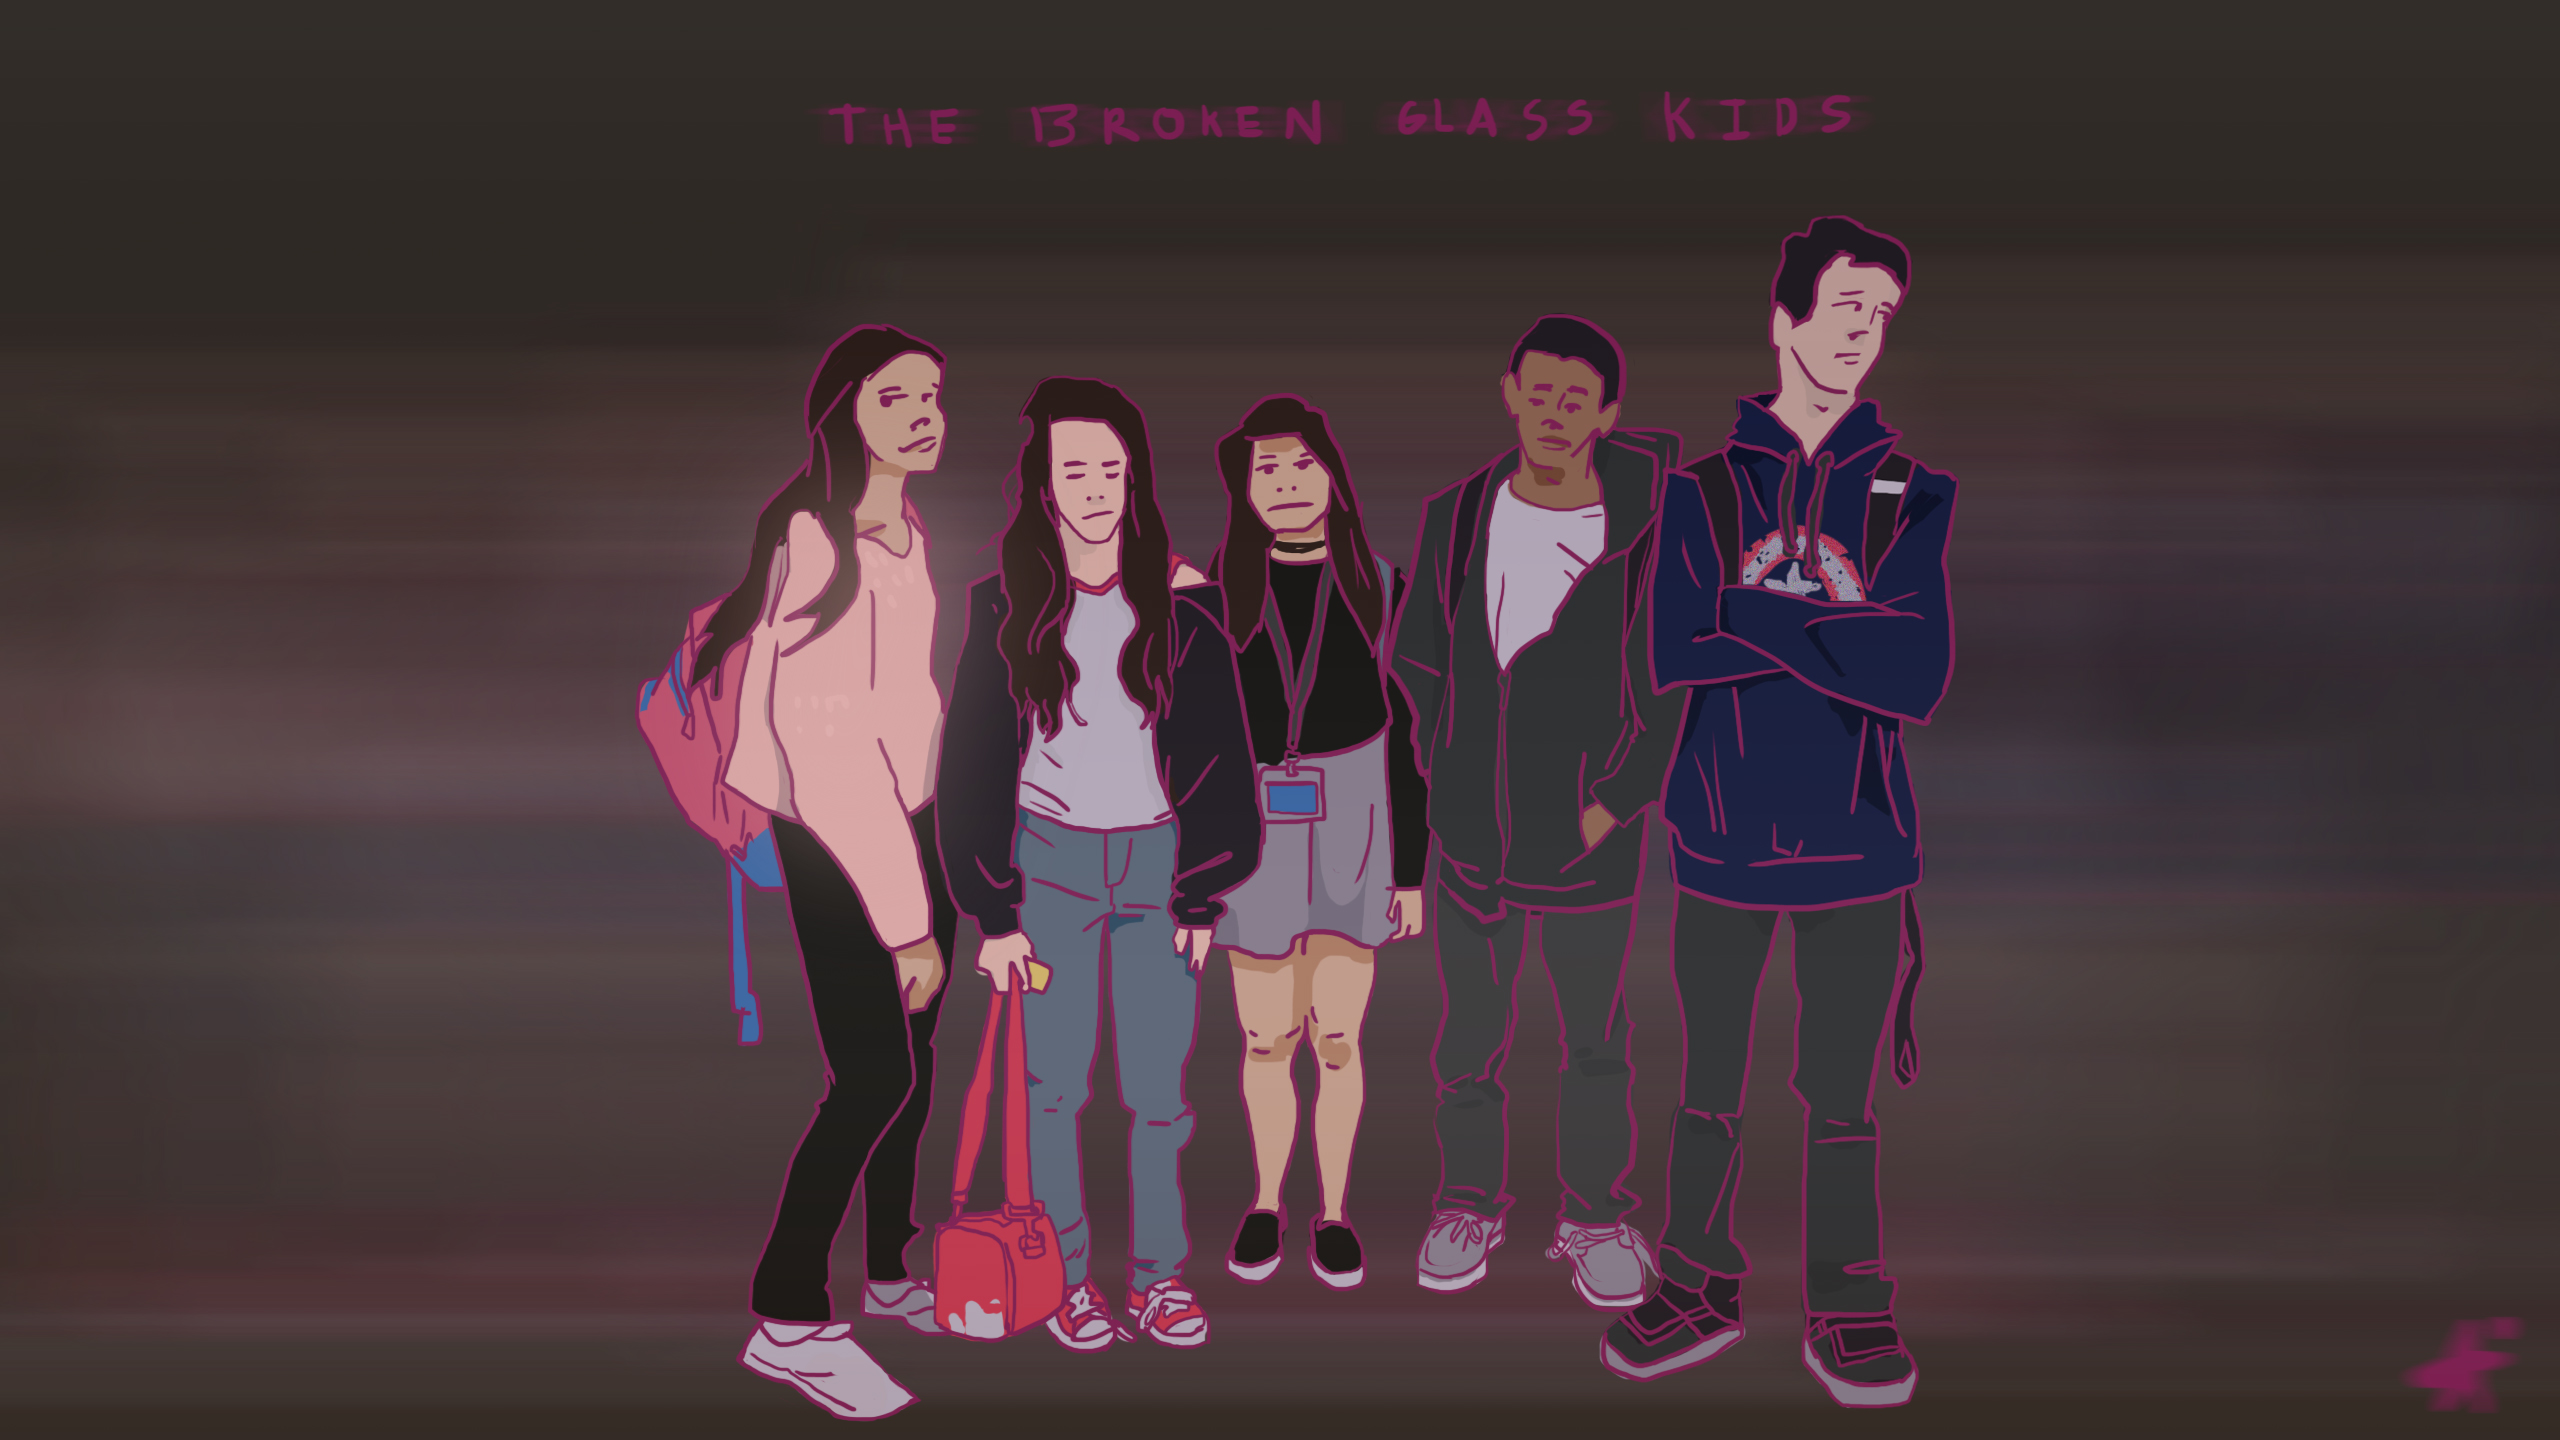 The Broken Glass Kids